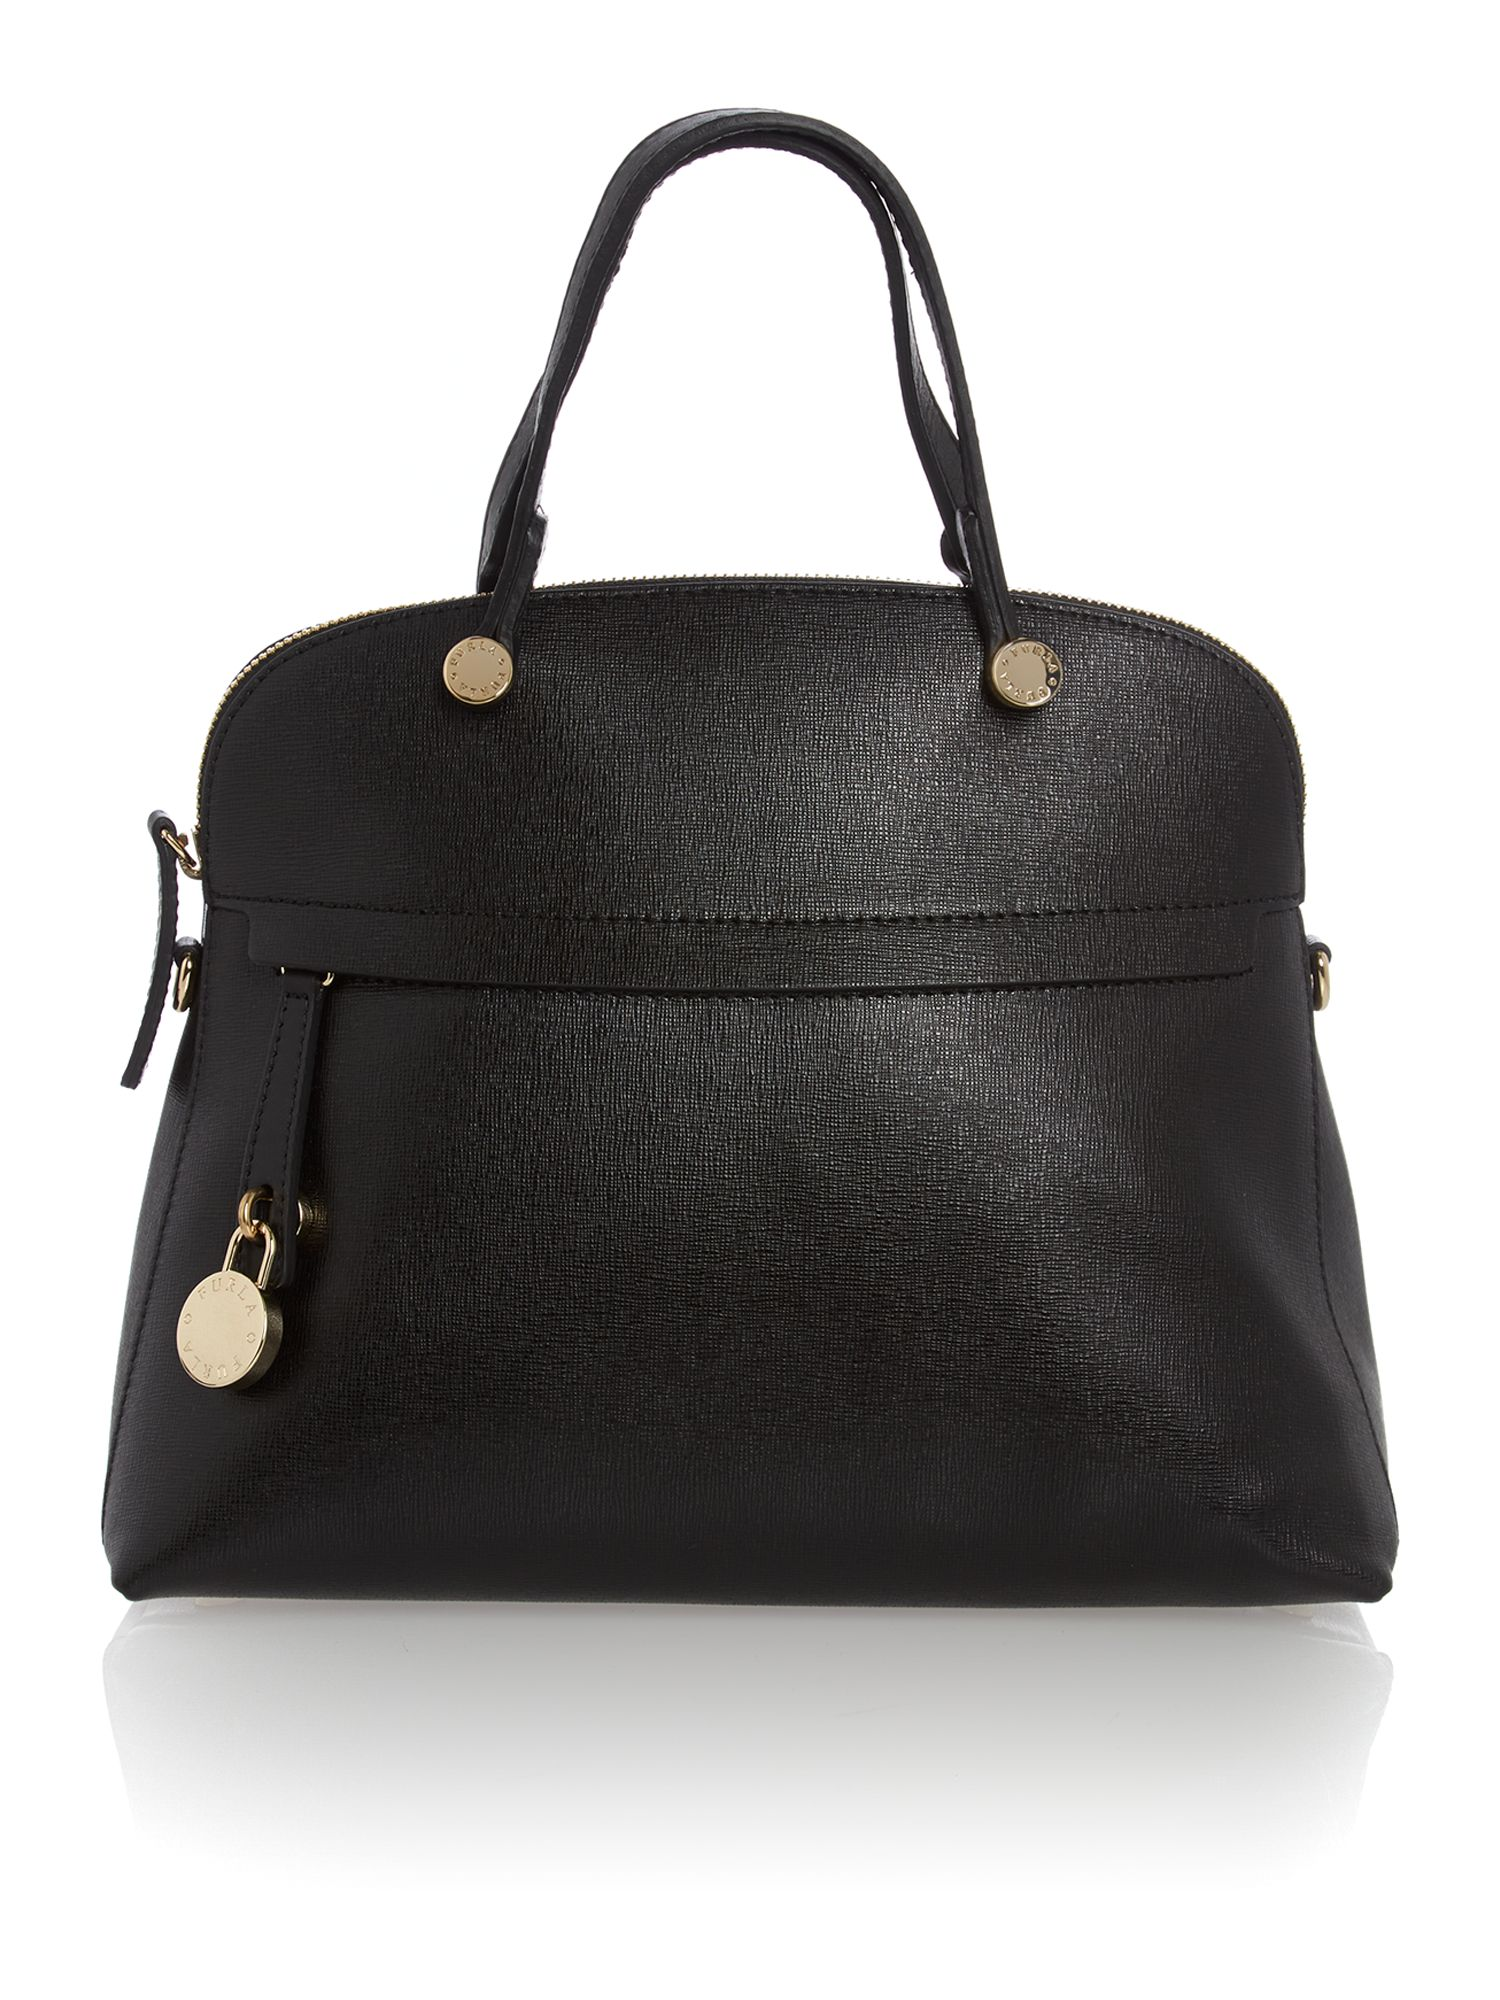 Polaris black small cross body bag